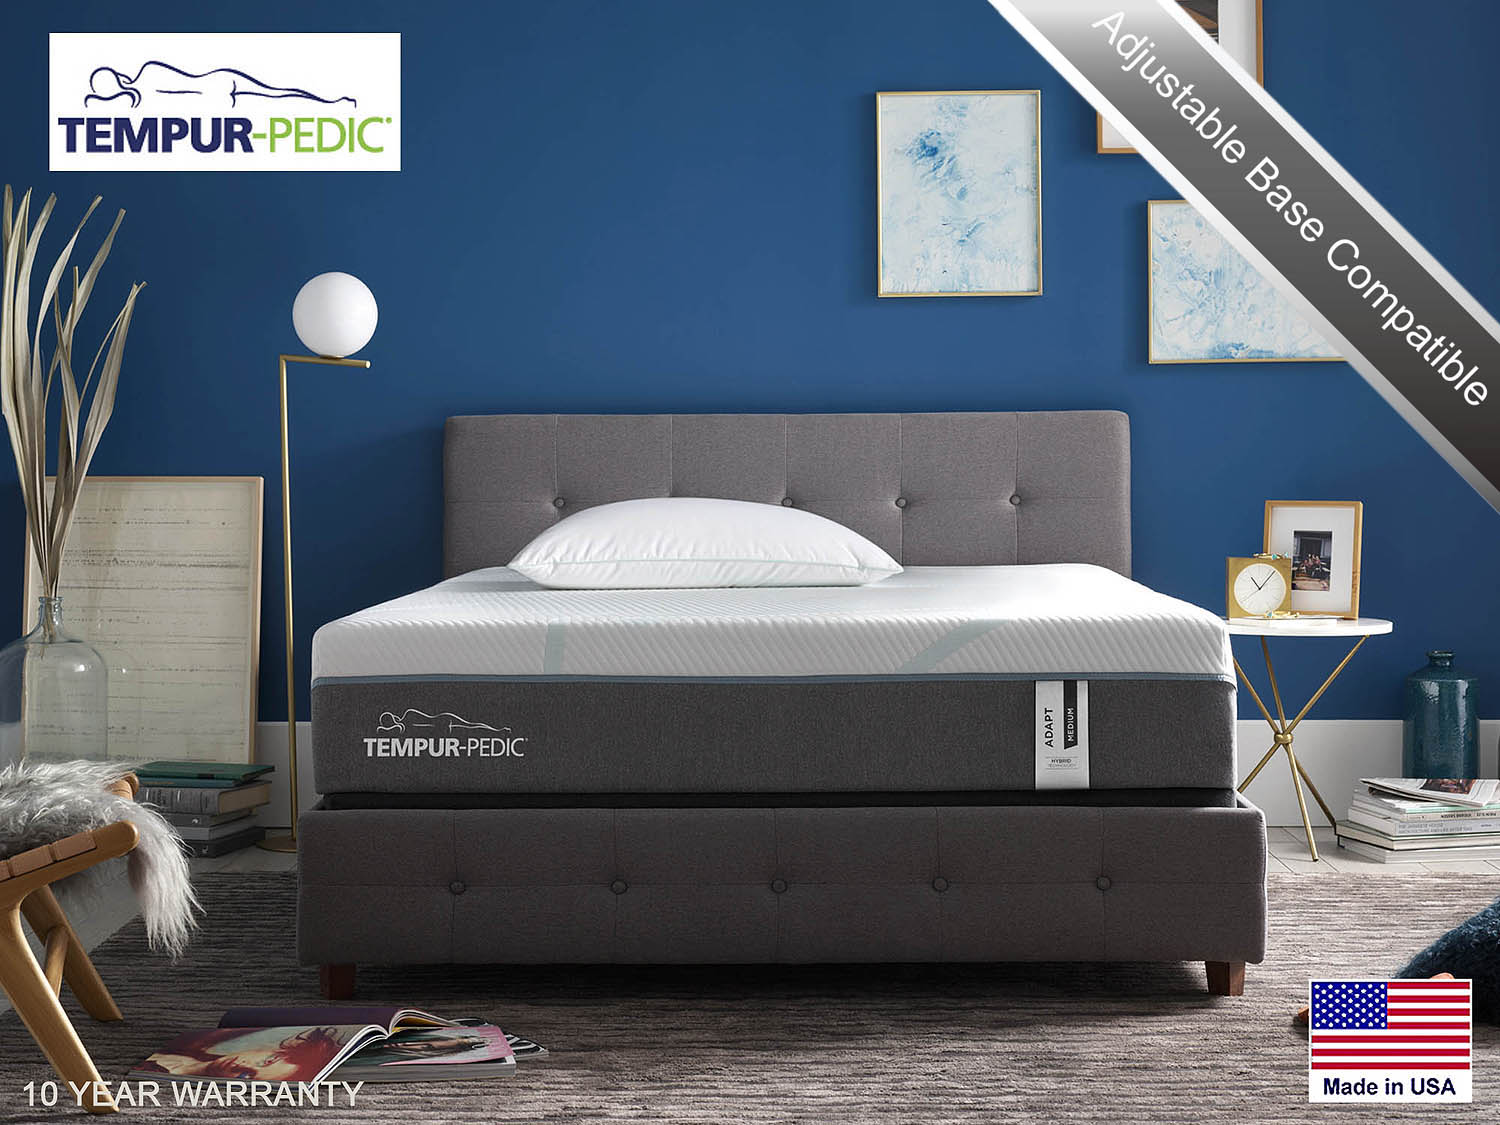 Tempur-Pedic Adapt Hybrid Mattress